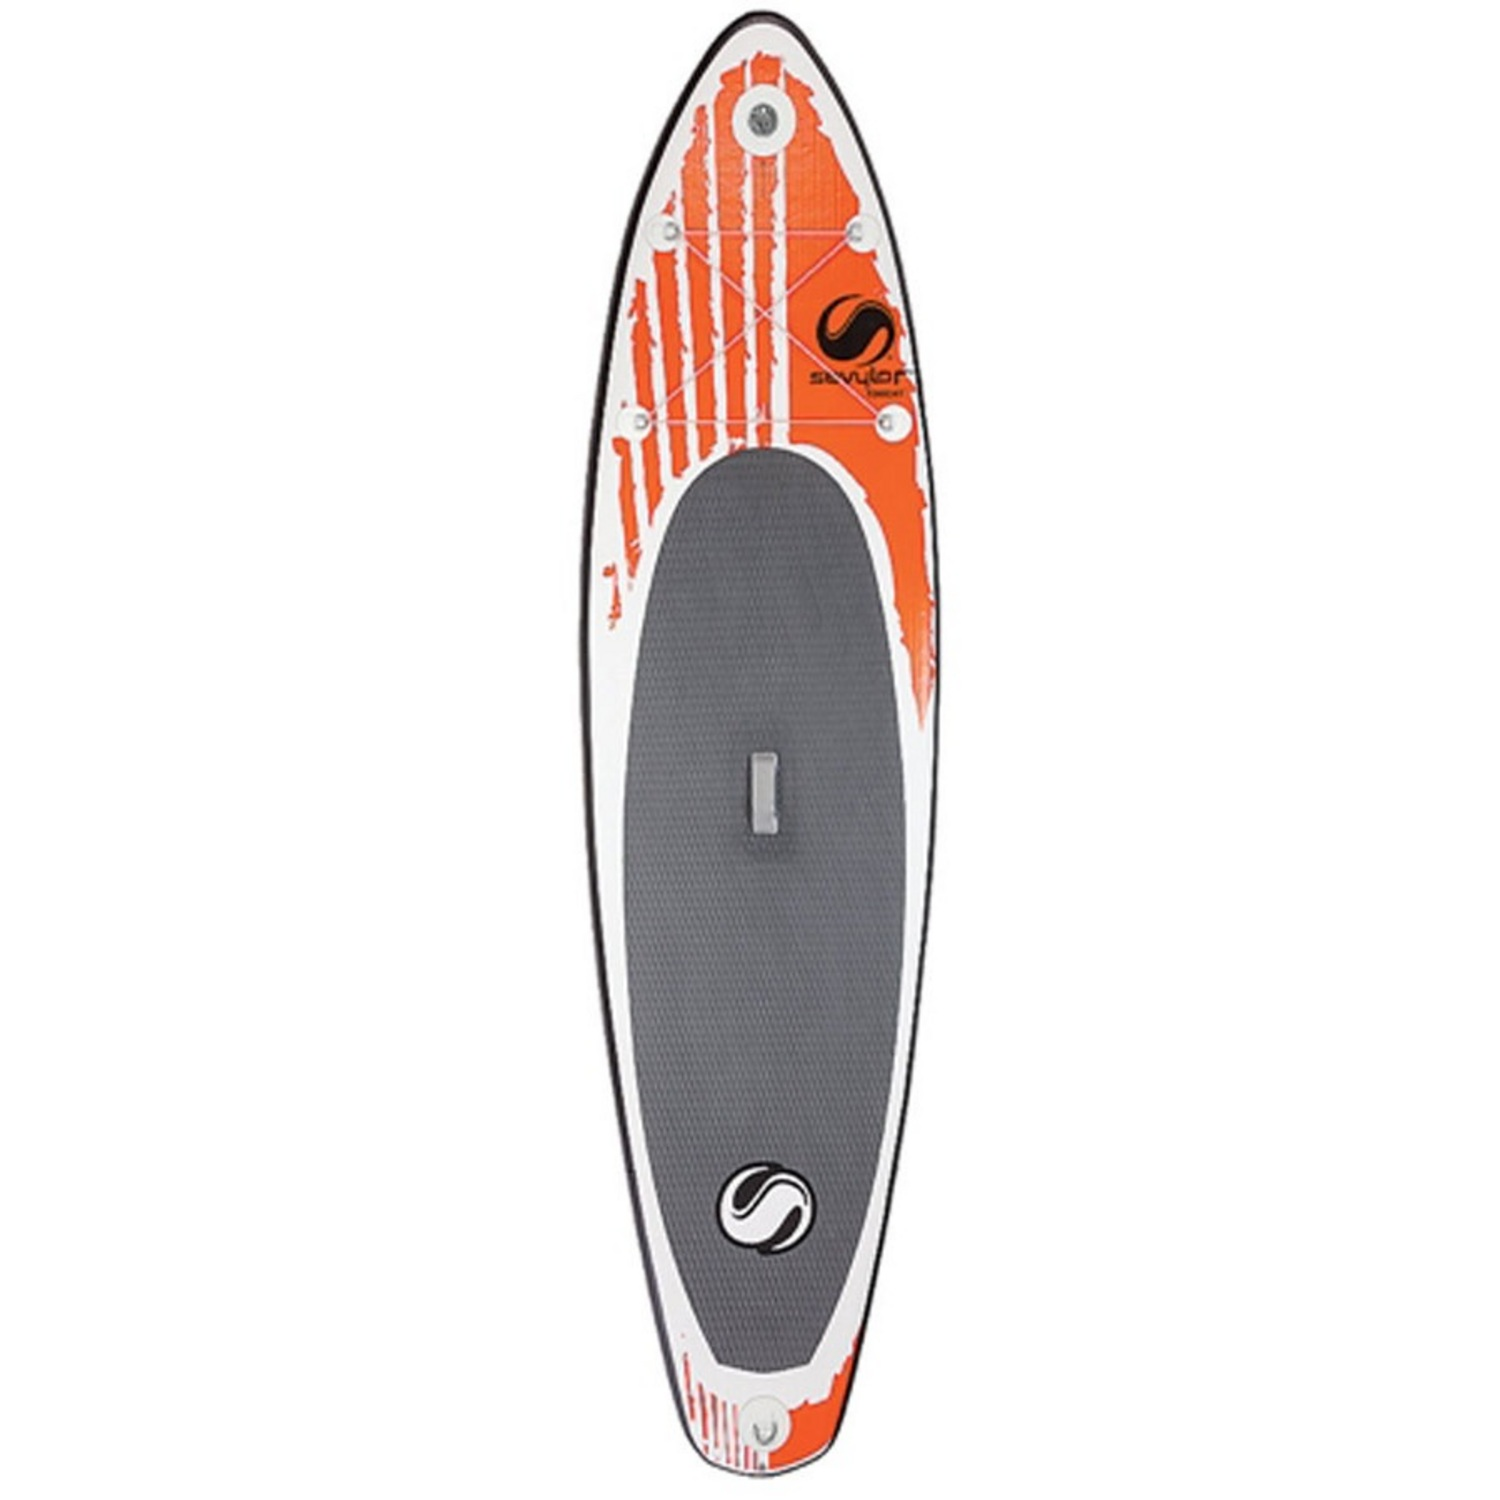 Sevylor Tomichi Inflatable SUP